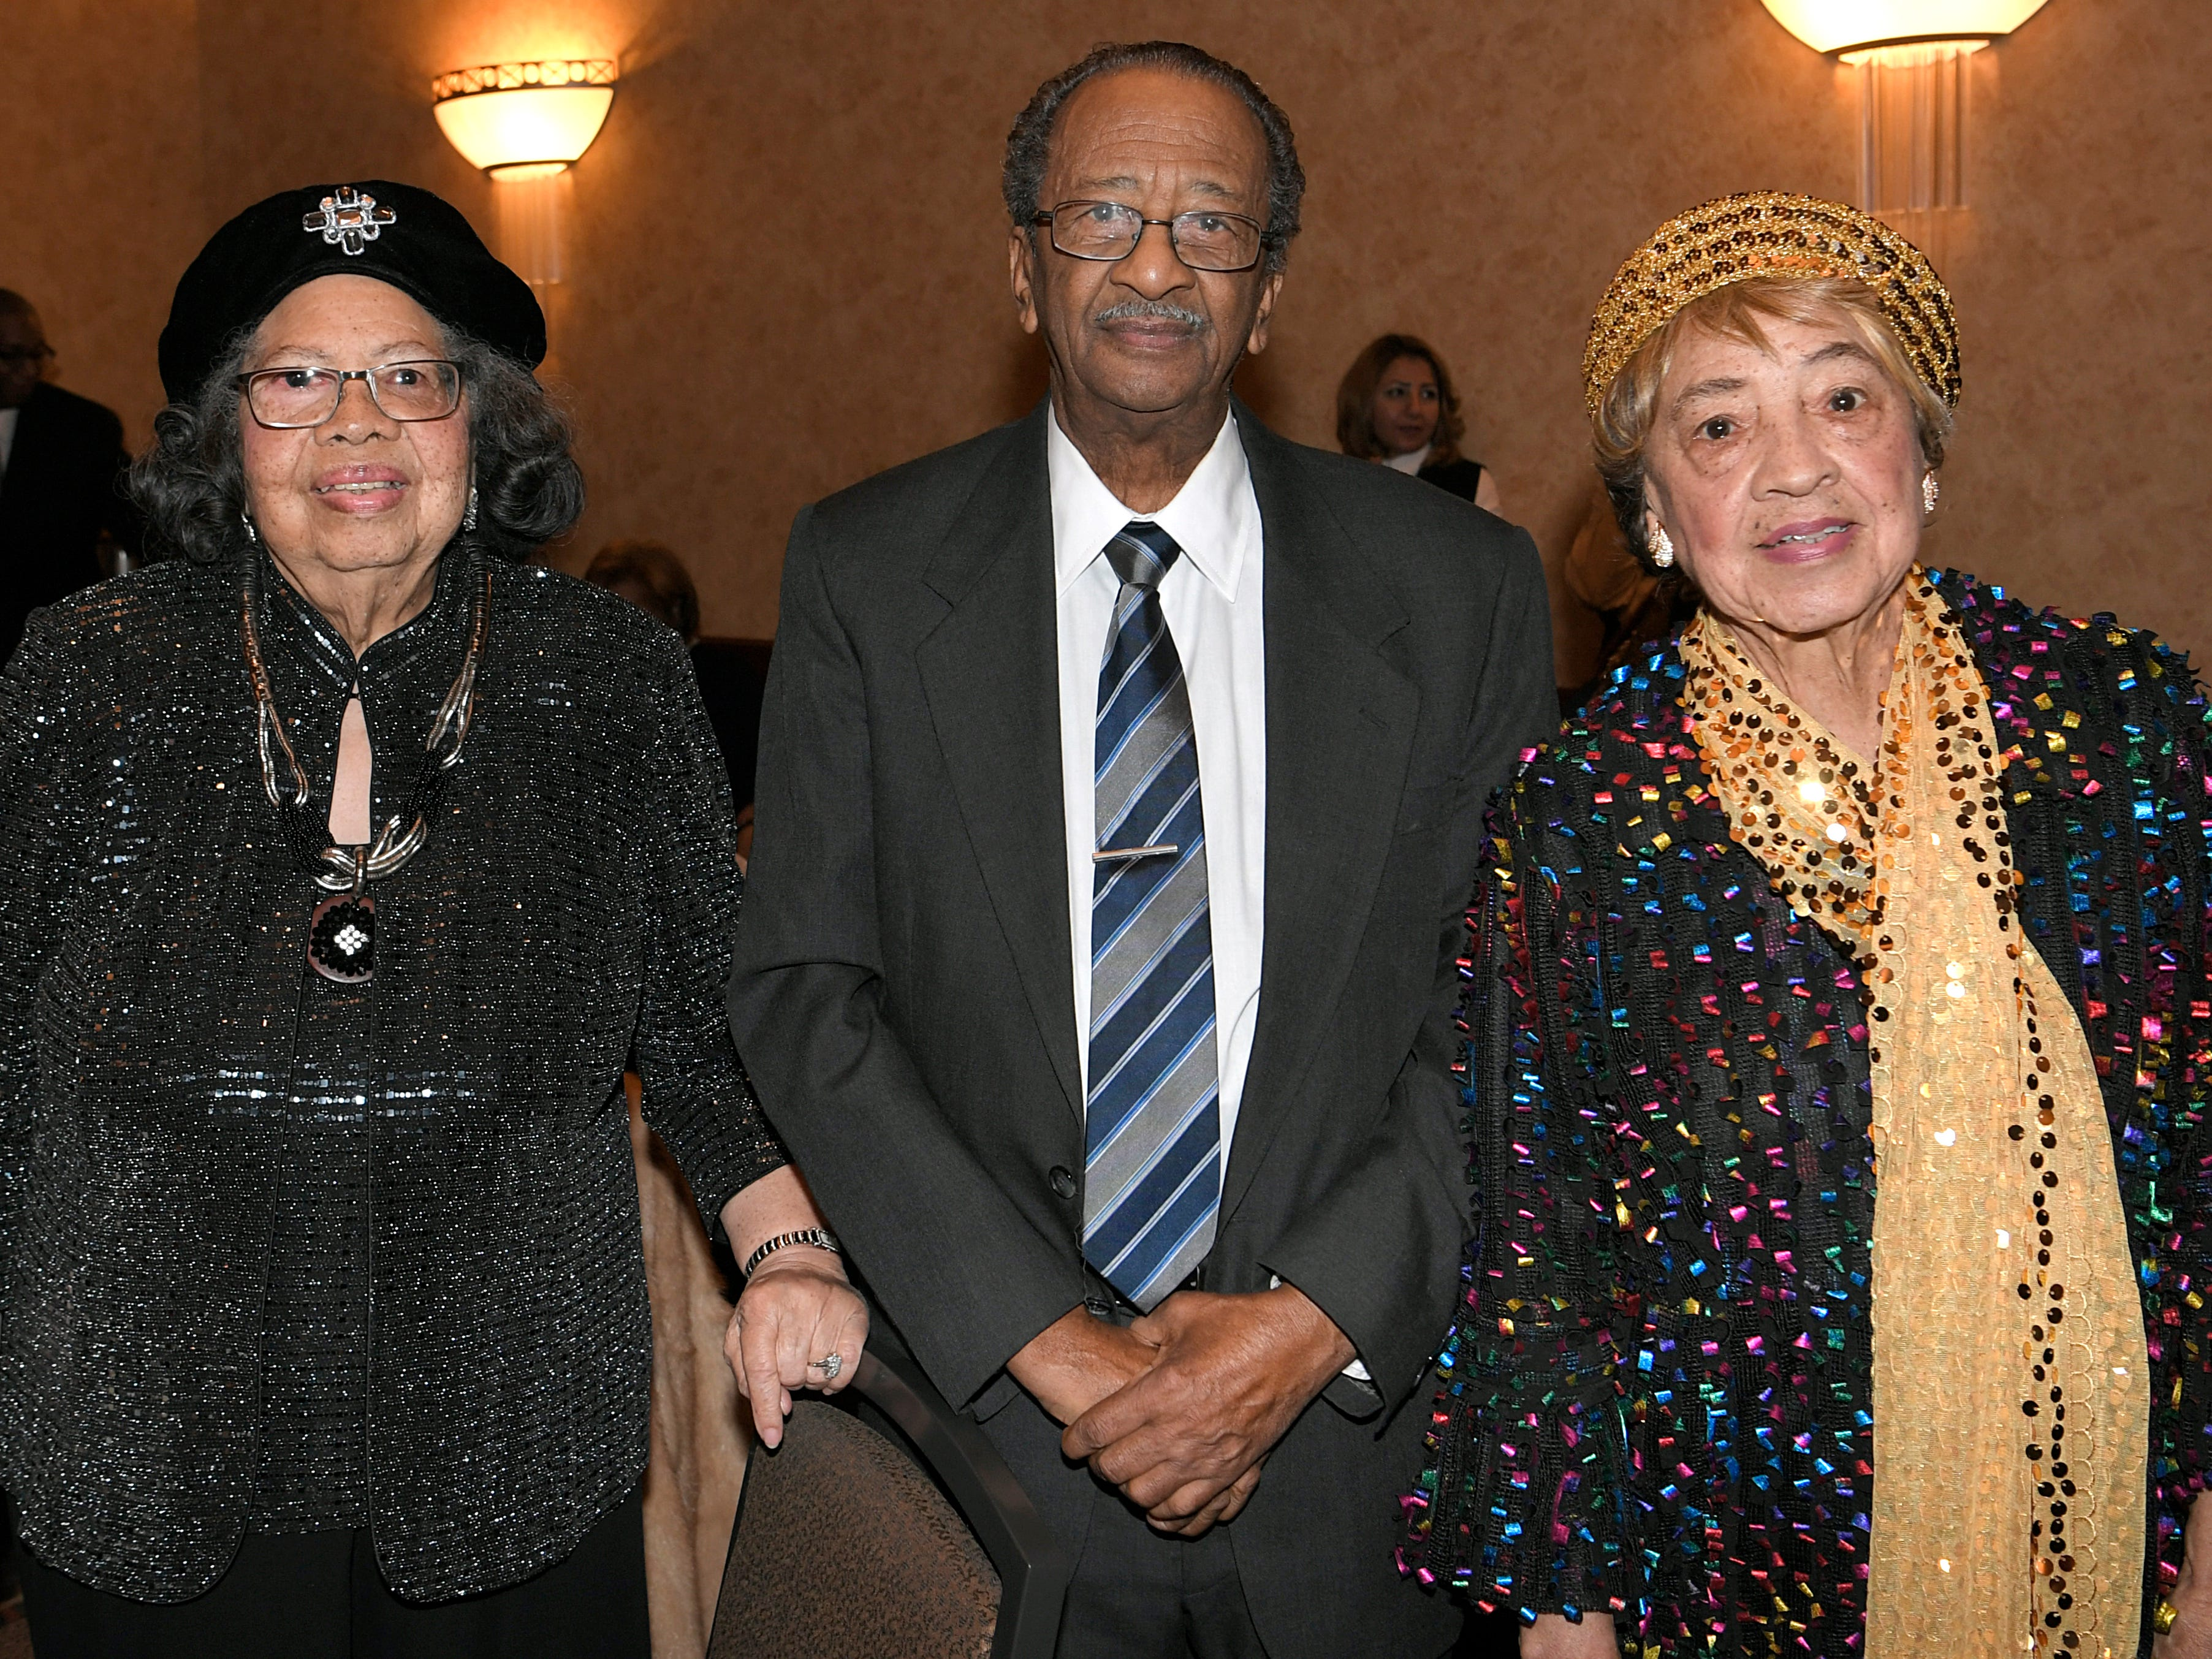 Eleanor Bright, Littleton Wade and Mary Bright Walker at the African American Heritage Society's 18th Annual Black Tie Affair at the Embassy Suites in Franklin on Sat., Feb. 2, 2019.